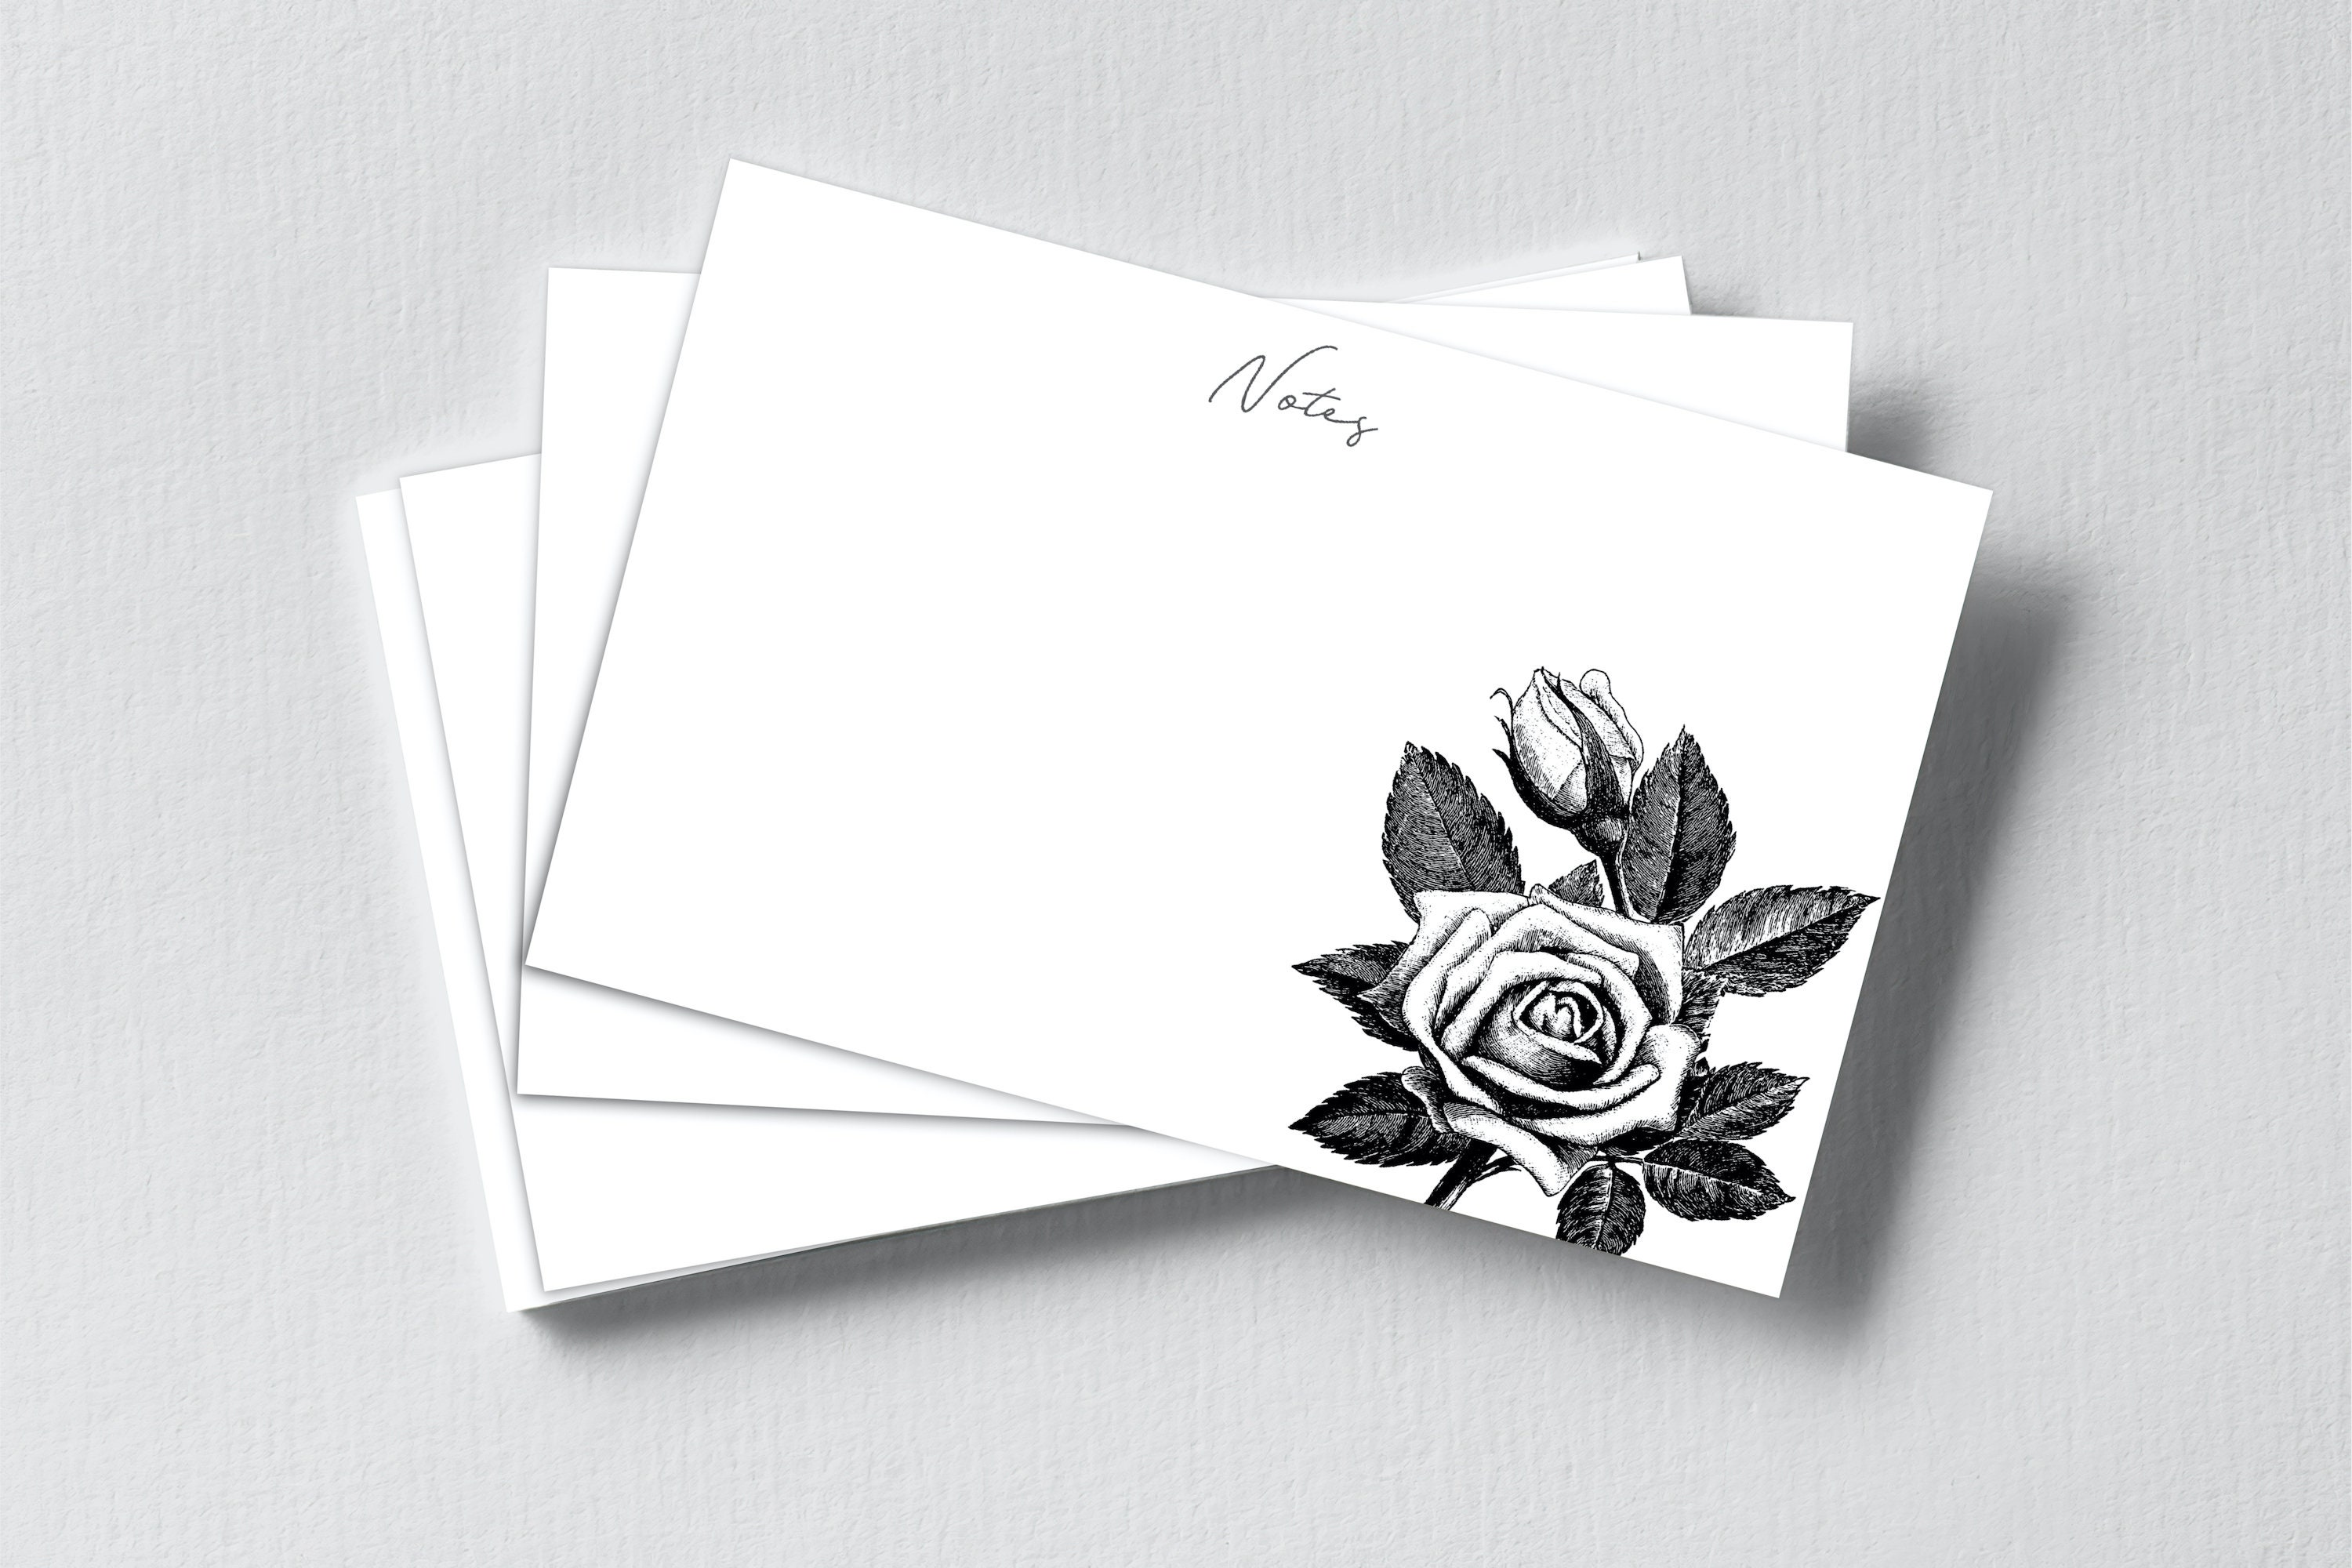 A stack of notecards with a black and white illustration of a rose on each.